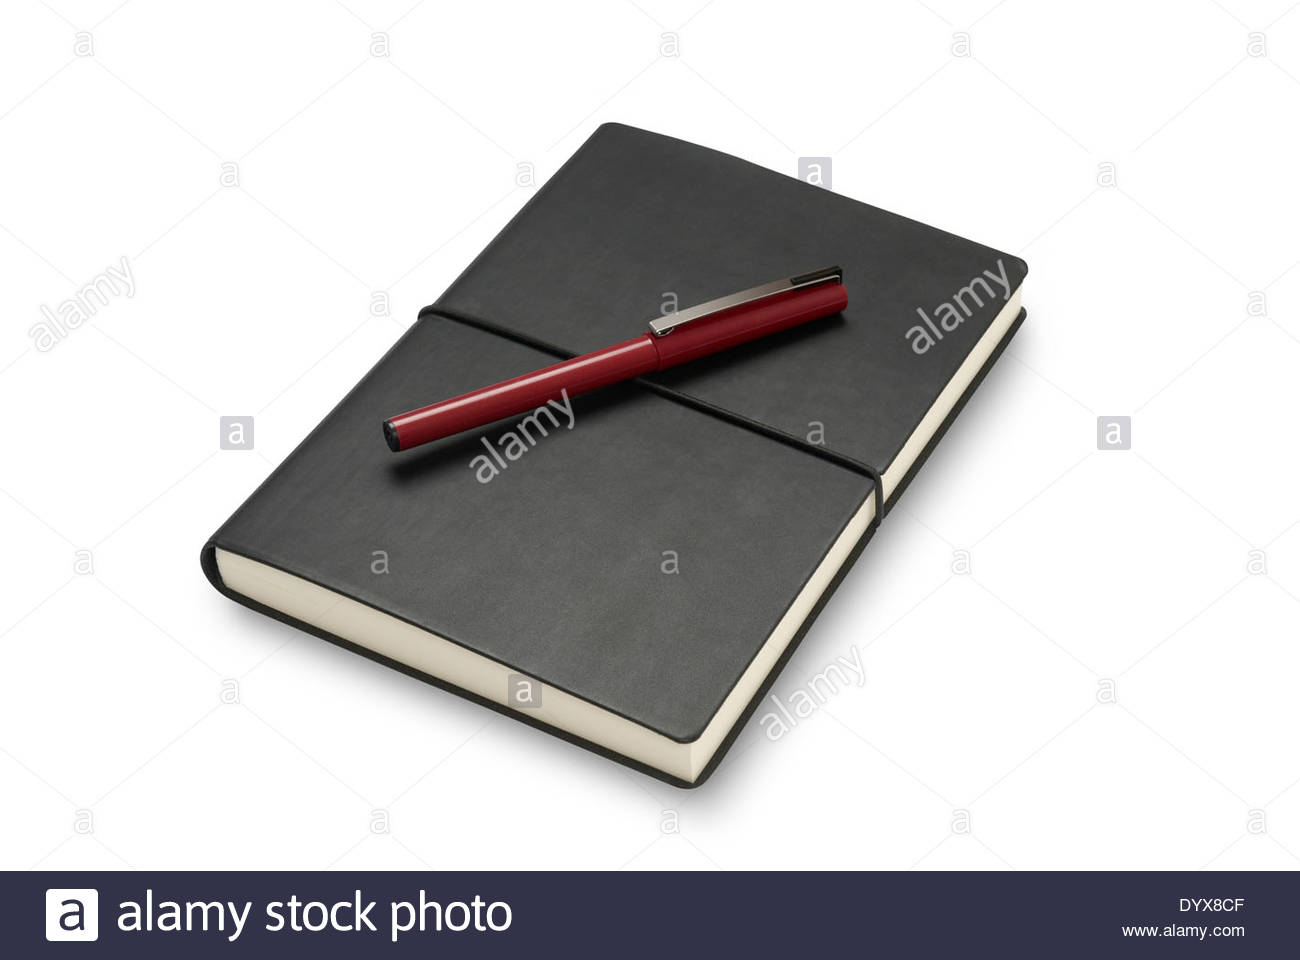 Black journal or notebook closed with a red pen. Isolated on white with path - Stock Image